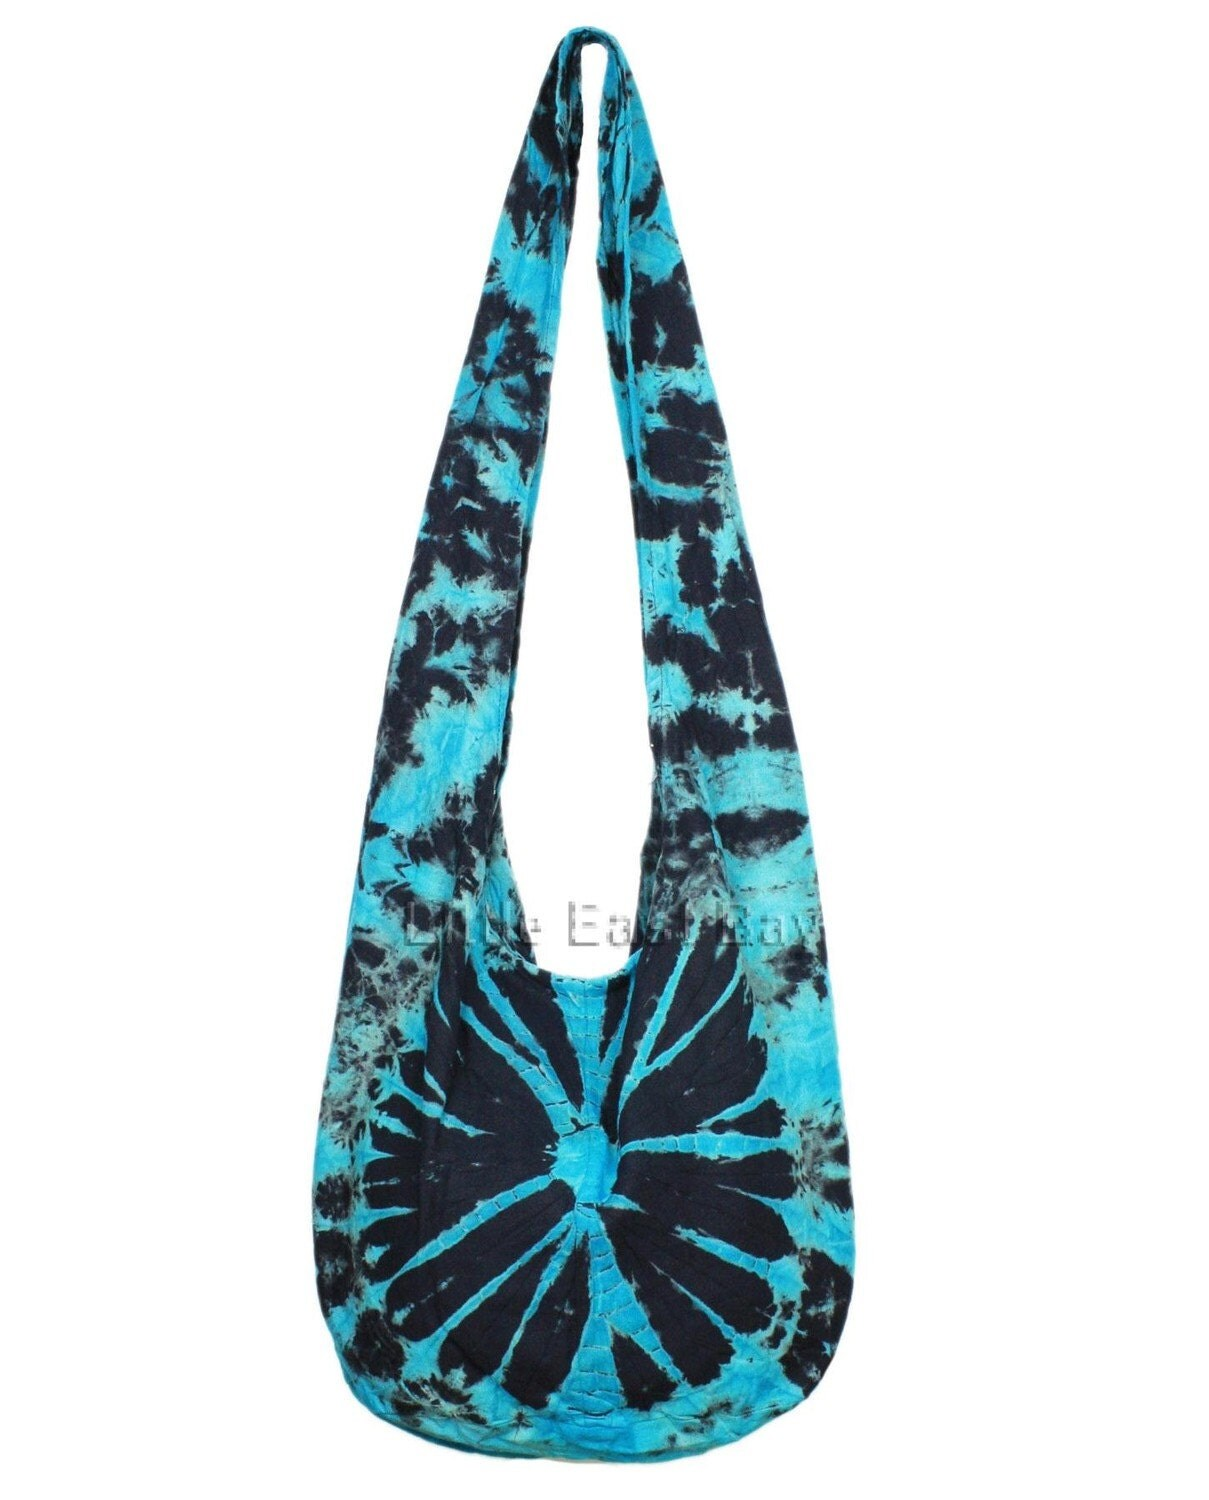 Free Hobo Purse Pattern : TURQUOISE BLACK SPIDER Hippie Hobo Tie Dye Sling by LittleEastBay